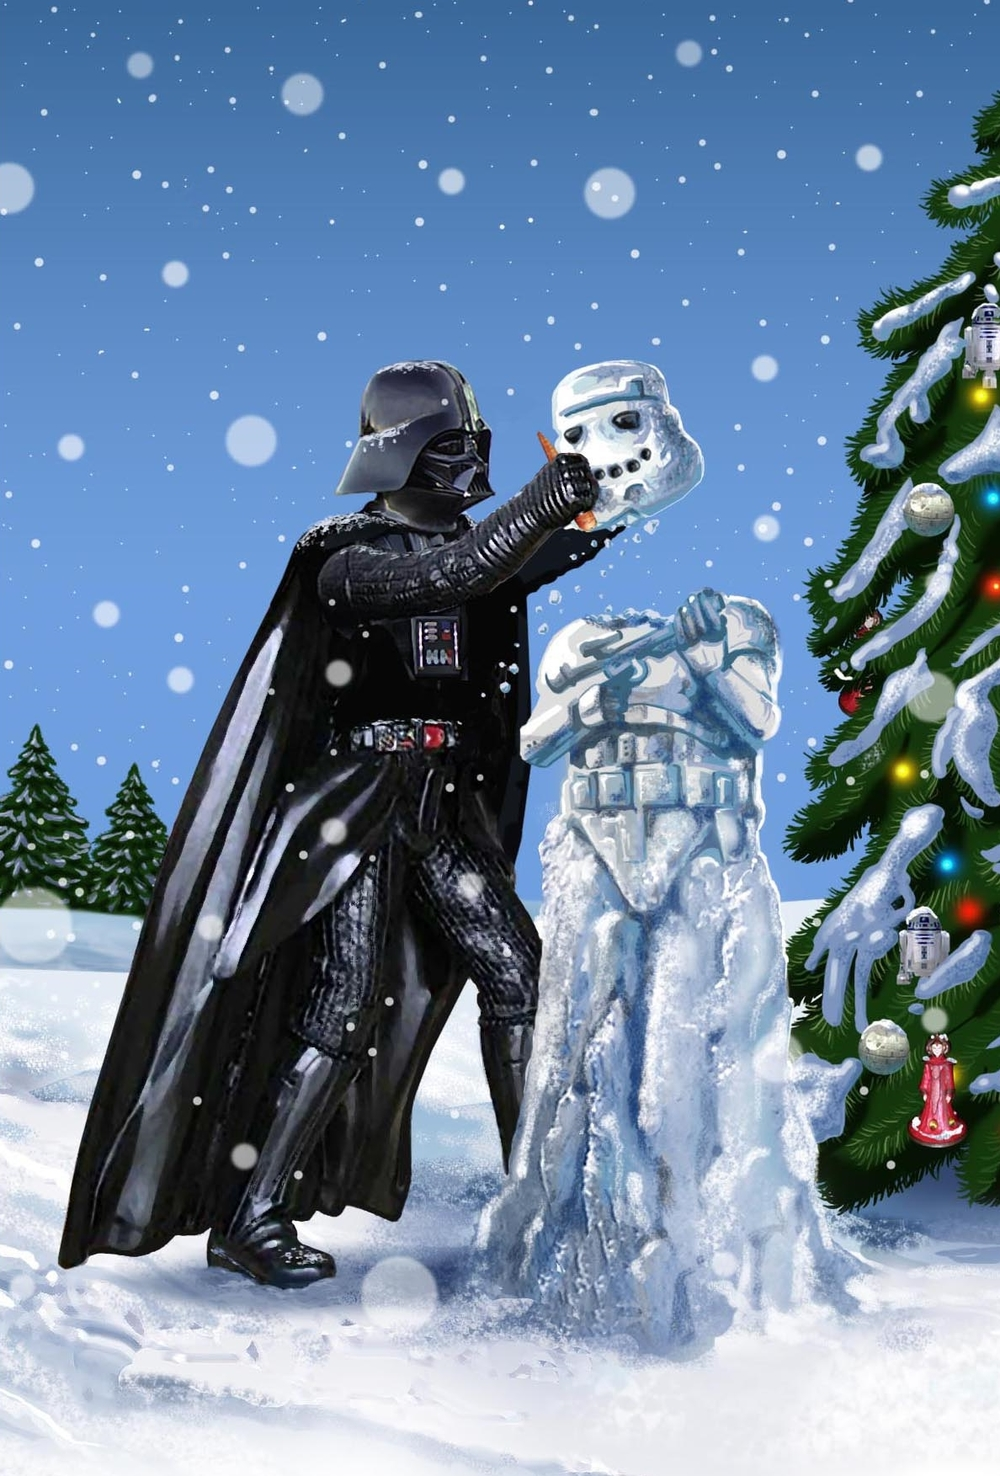 darth making snowman.jpg